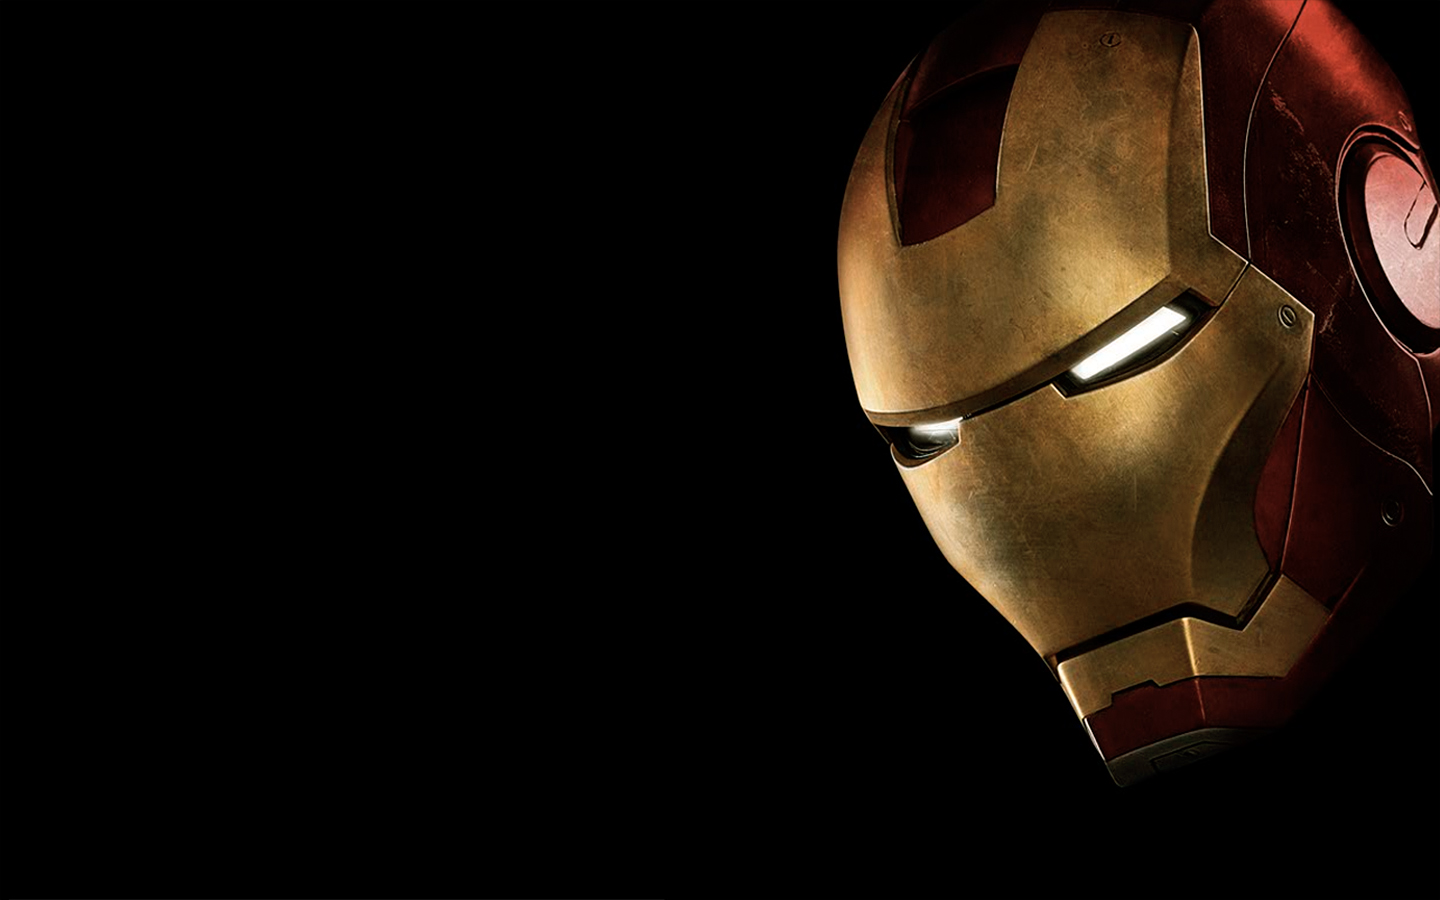 iron man   Iron Man 3 Wallpaper 31757925 1440x900